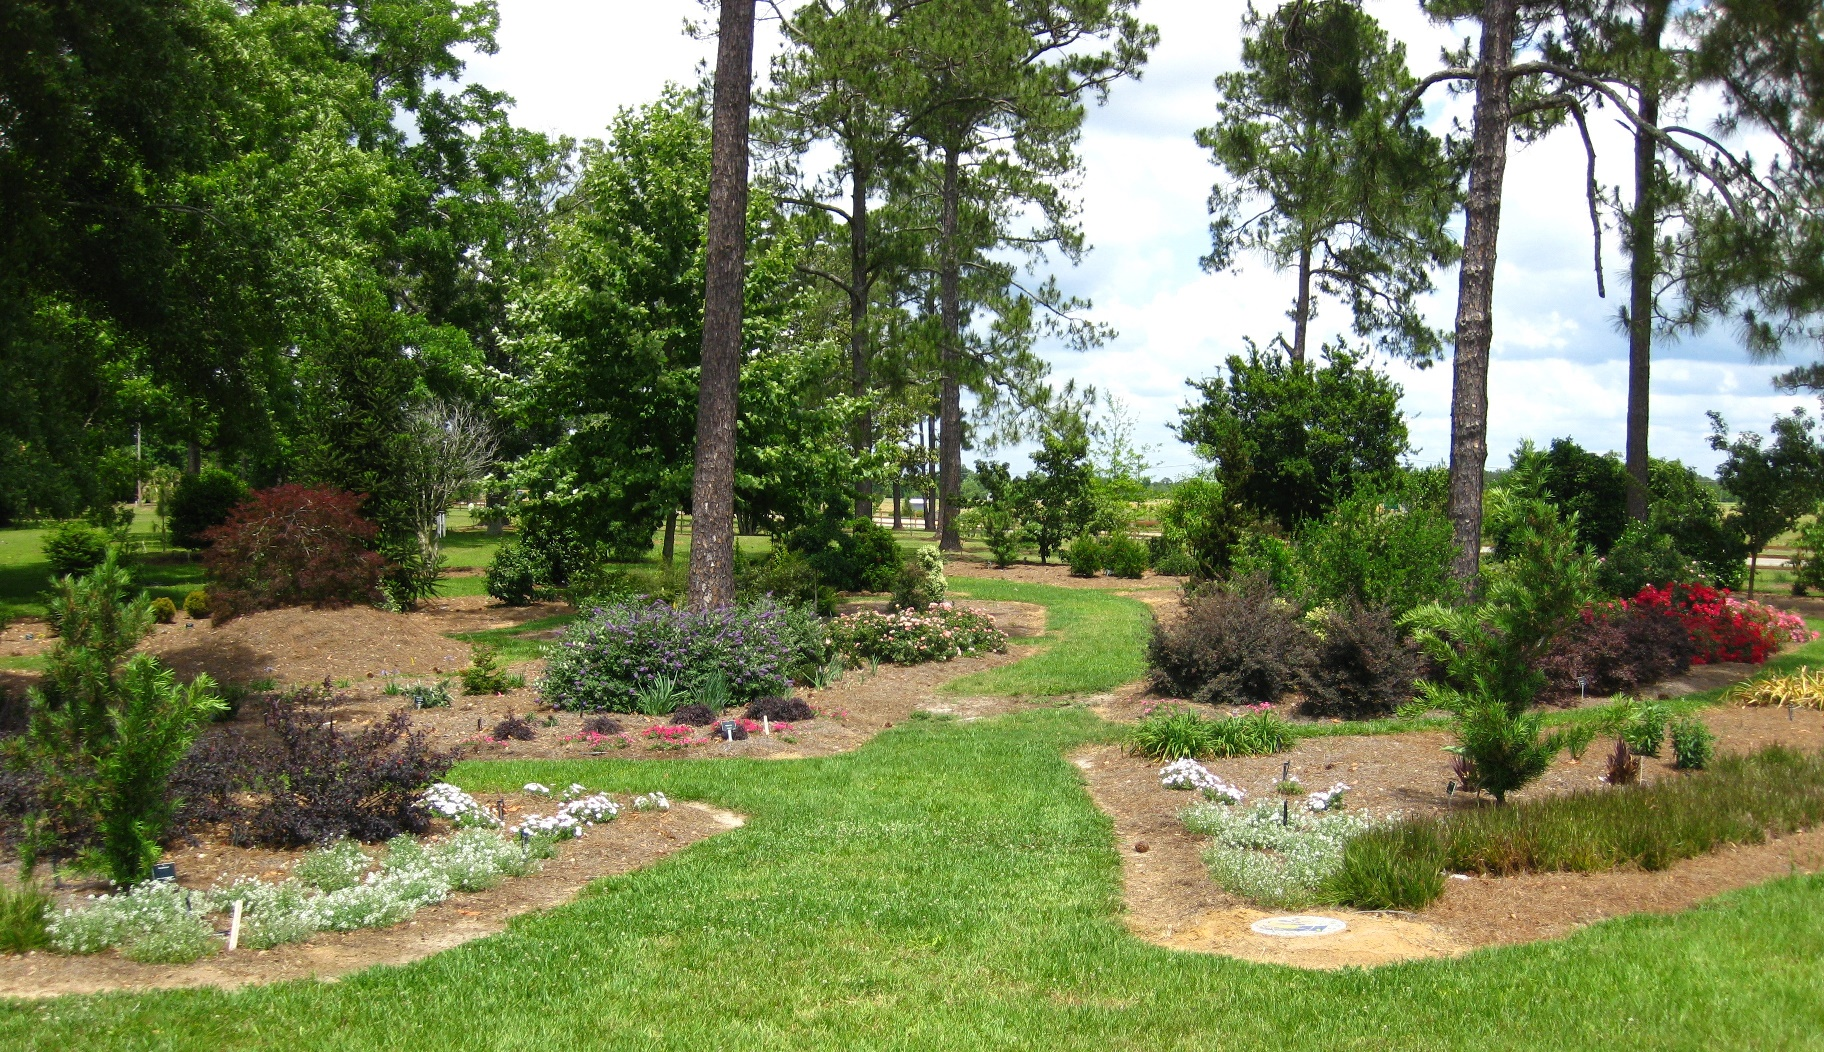 View of the Discovery Garden in Gardens of the Big Bend.